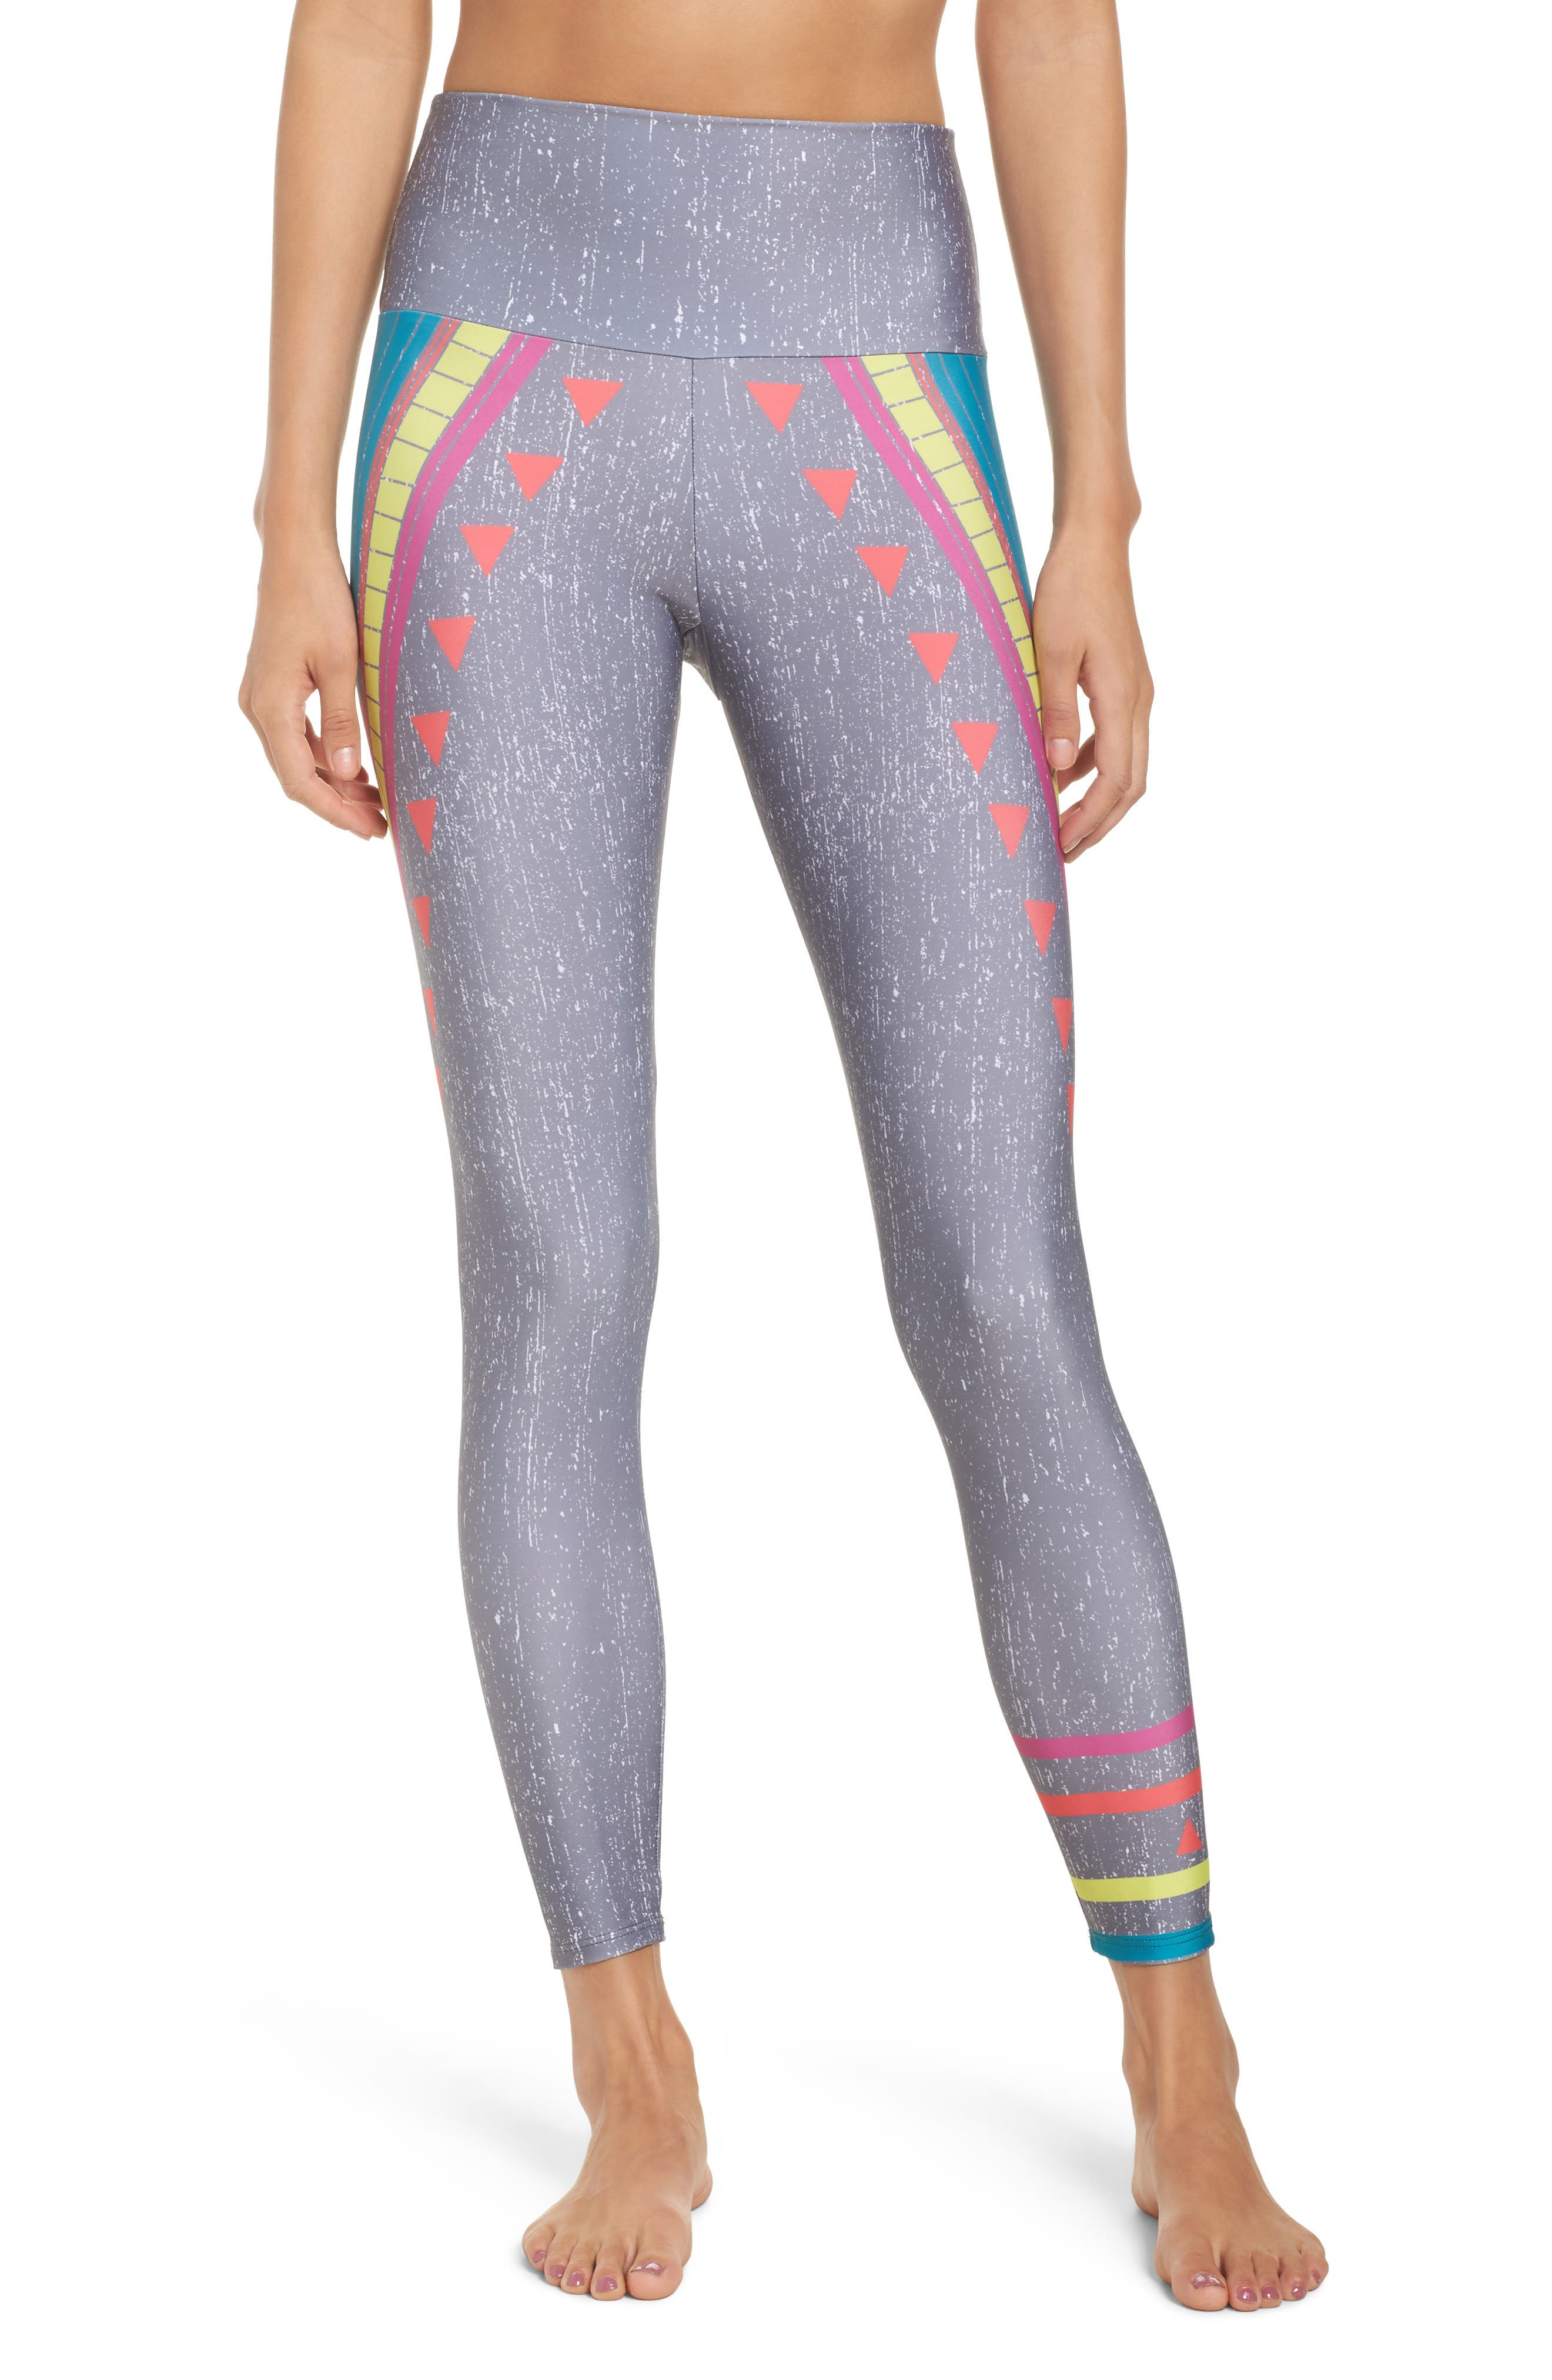 Alternate Image 1 Selected - Onzie High Waist Graphic Leggings